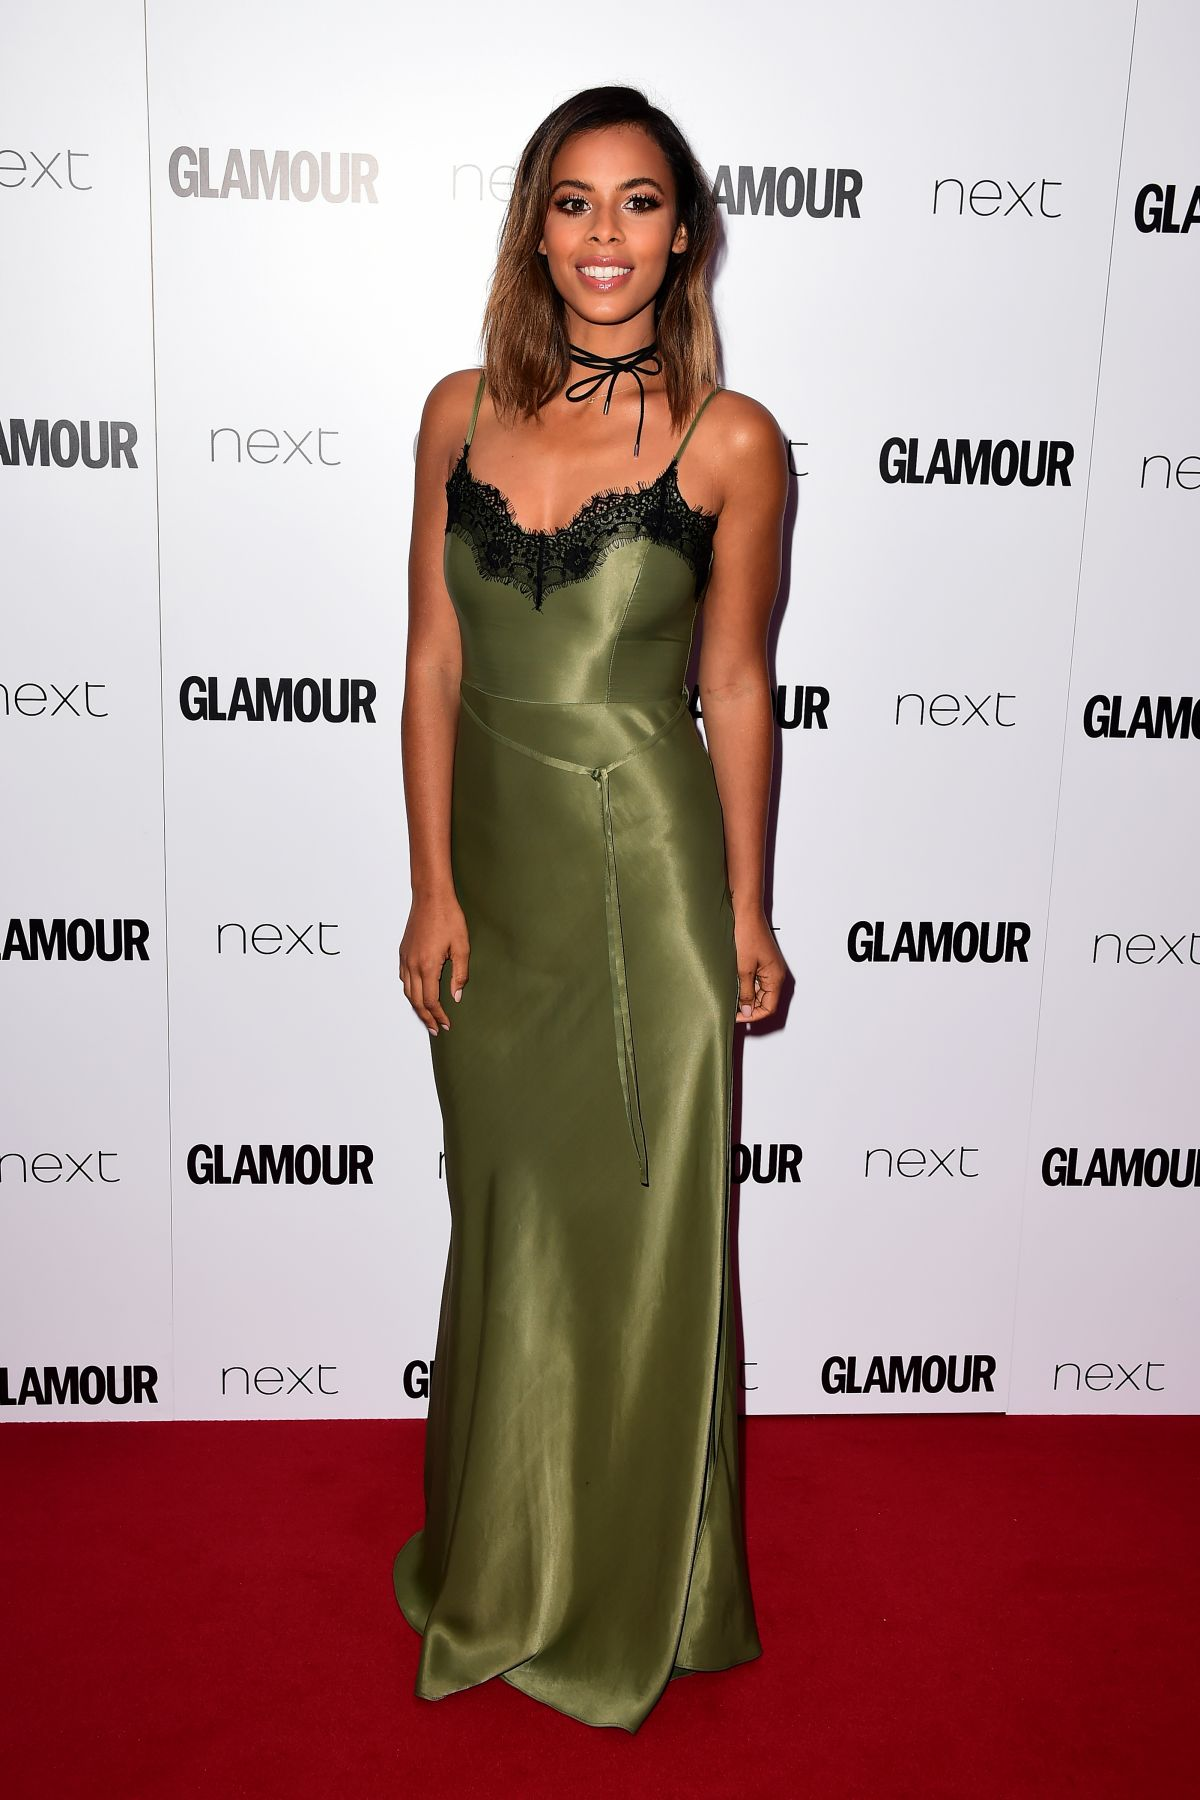 ROCHELLE HUMES at Glamour Women of the Year Awards 2016 in London 06/07/2016